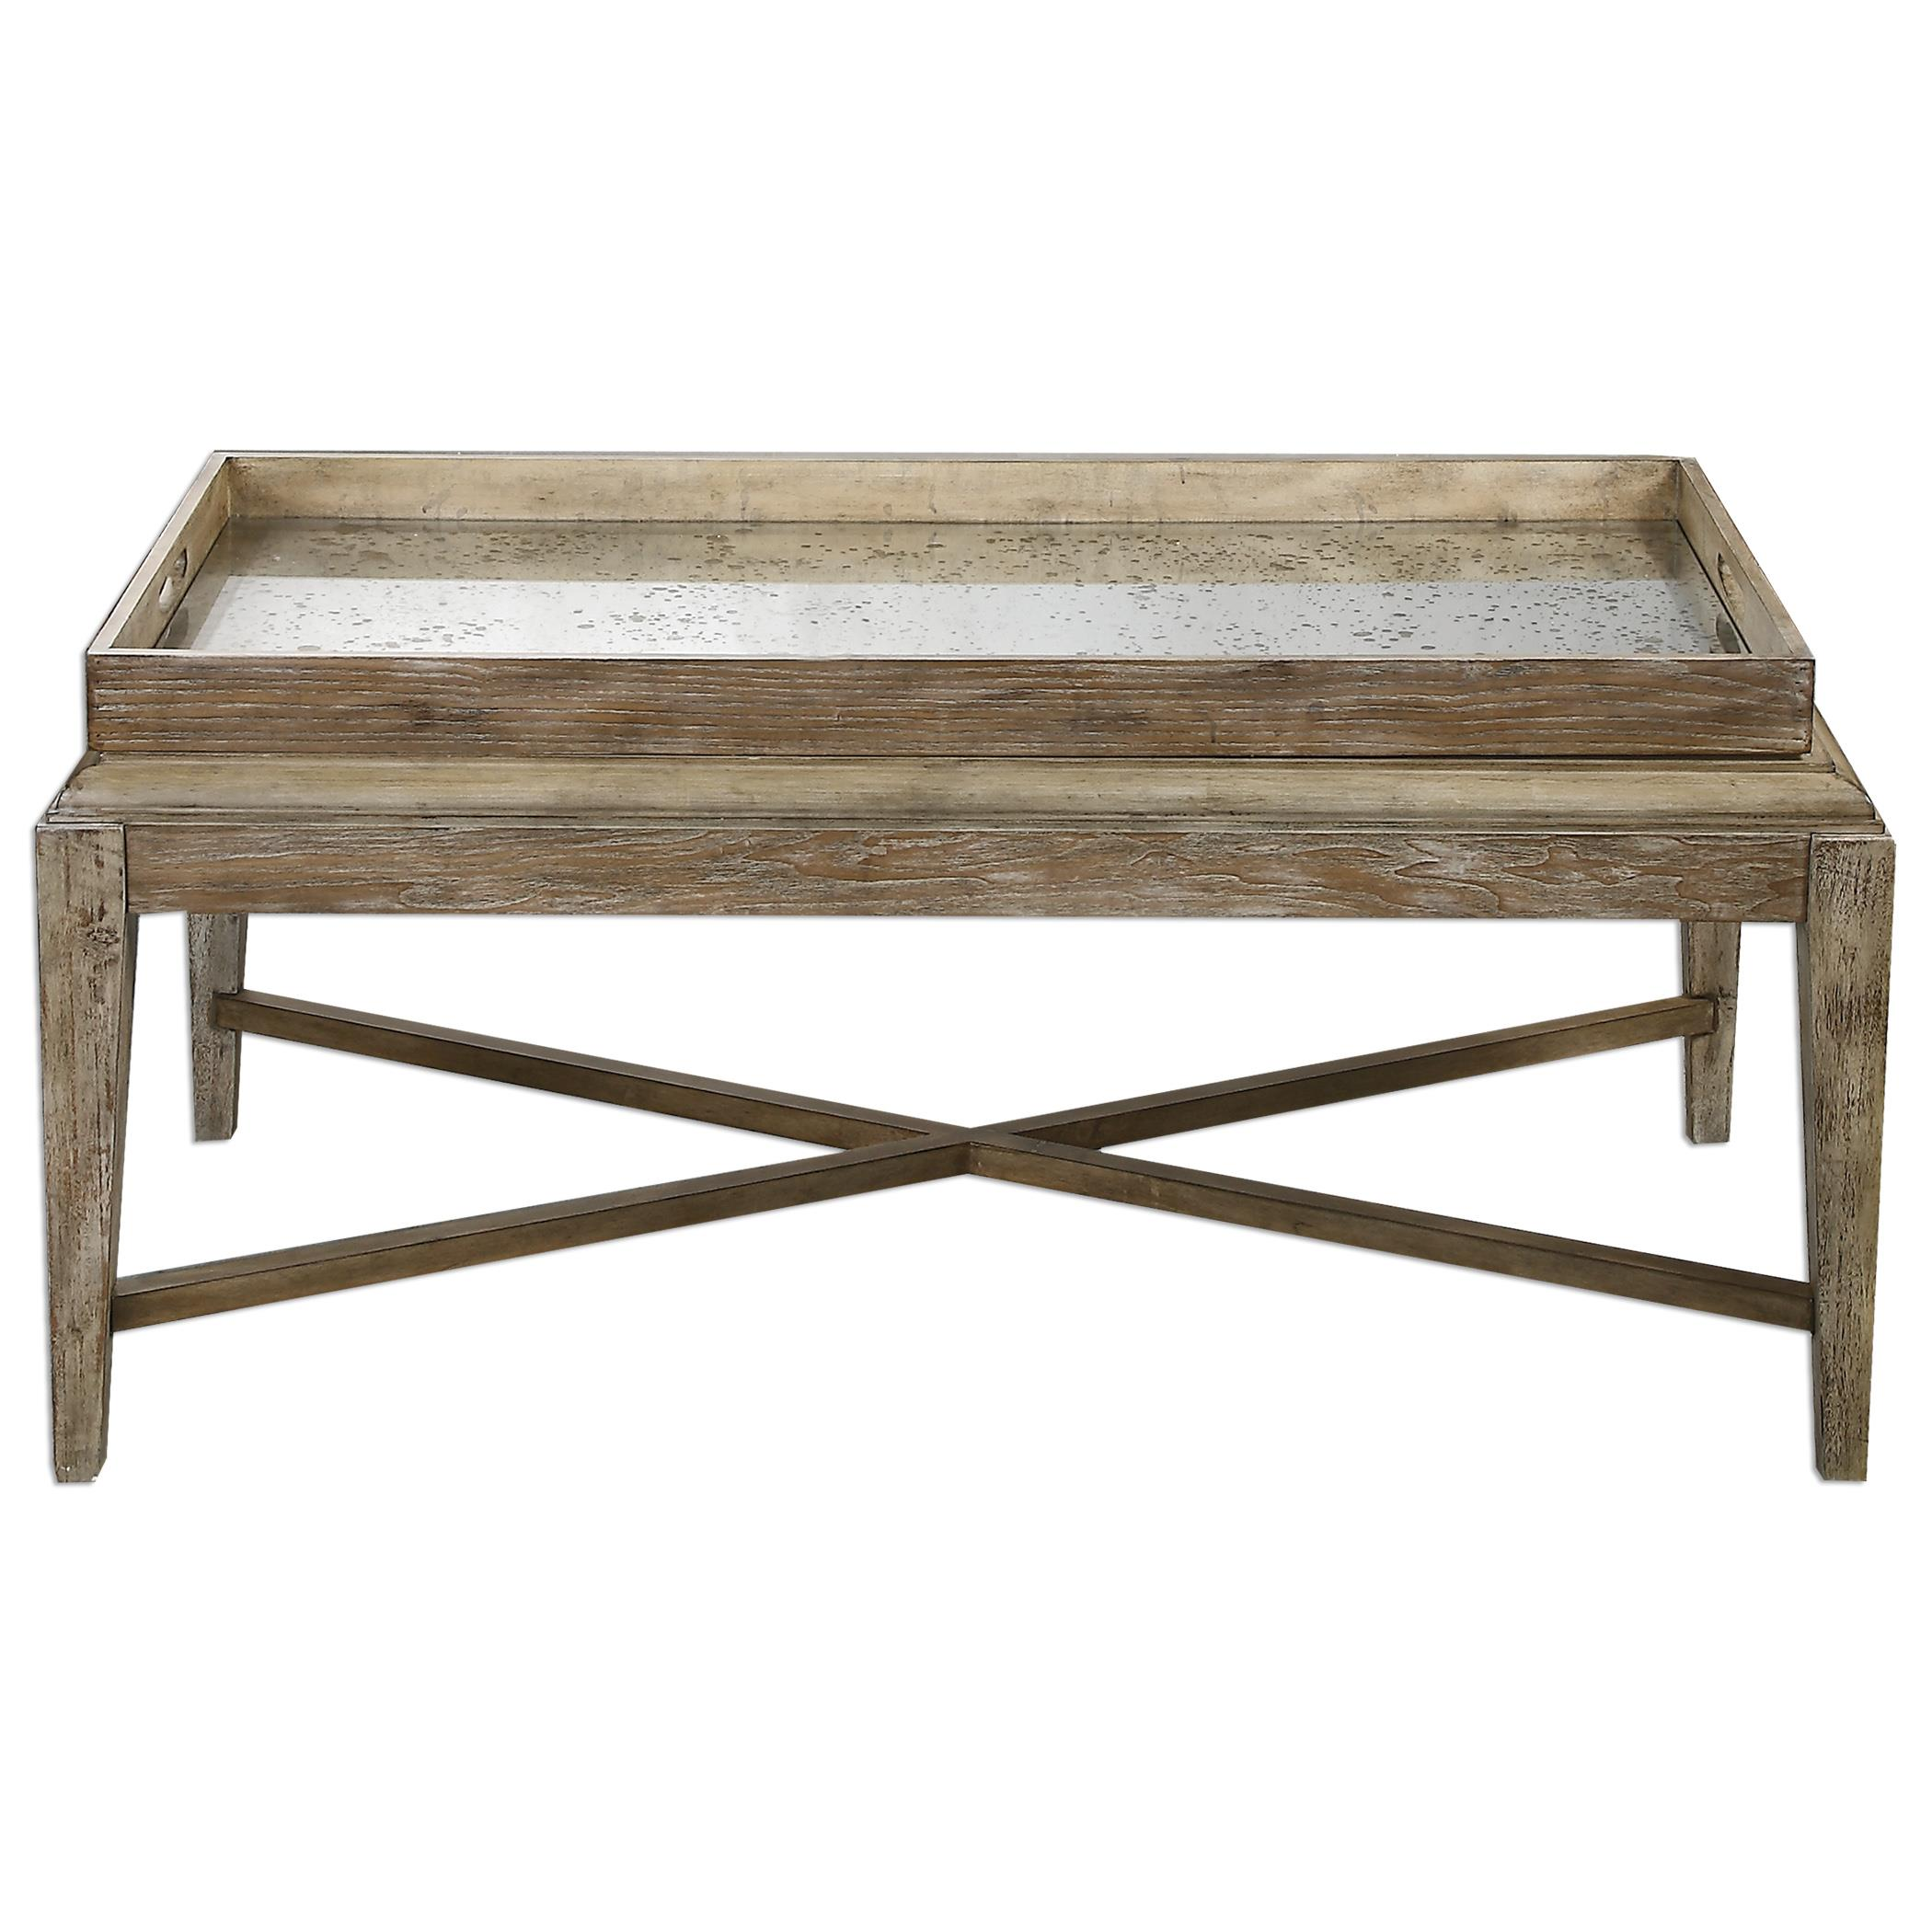 accent sofa lillberg cover uttermost furniture 24526 marek wooden coffee table